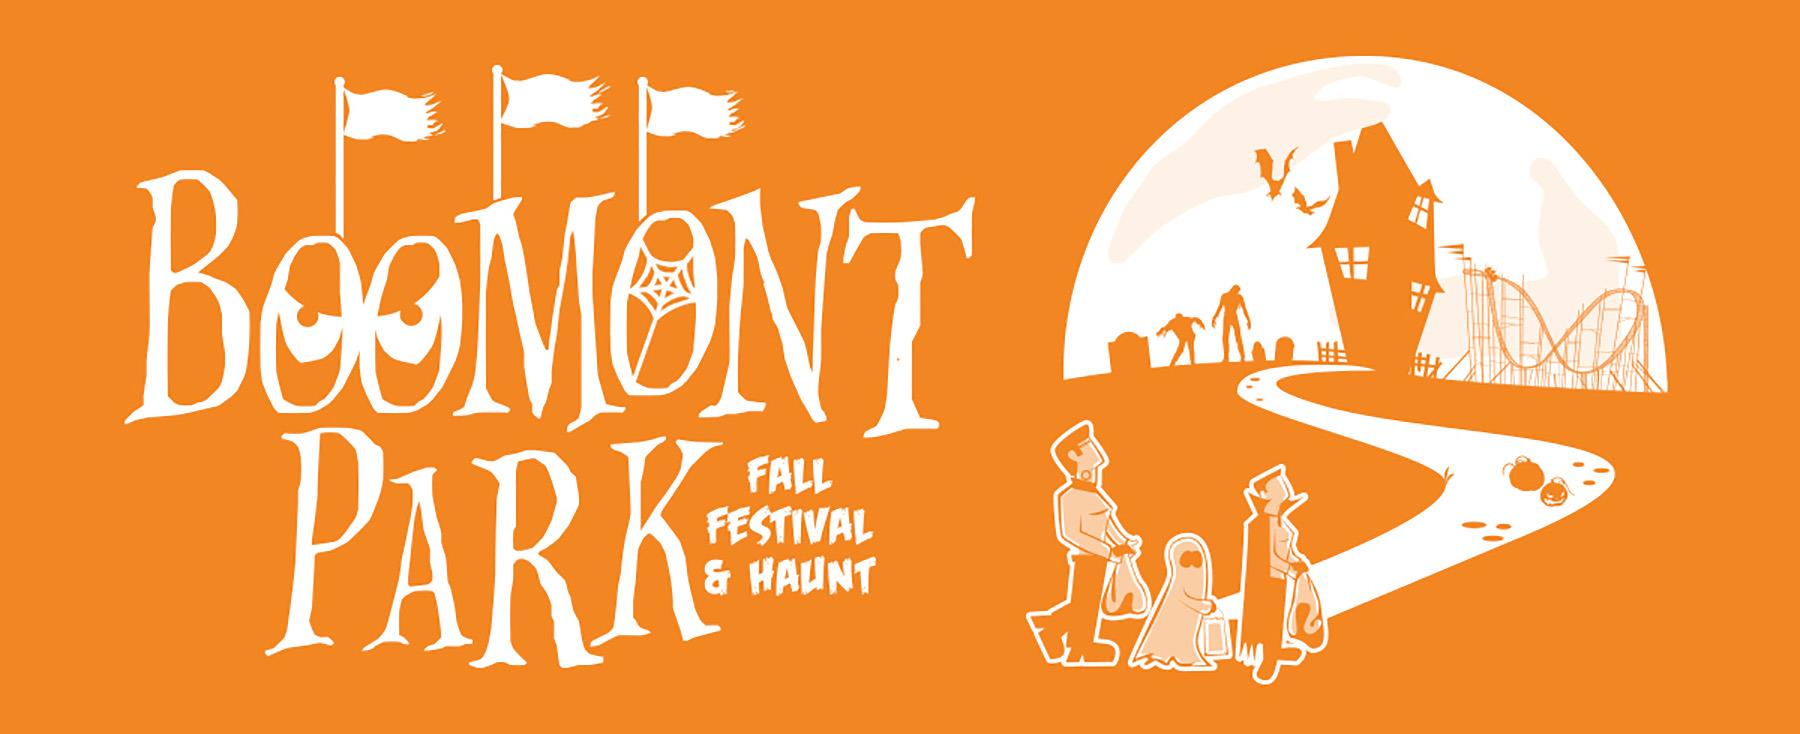 Boomont Park Fall Festival and Haunt